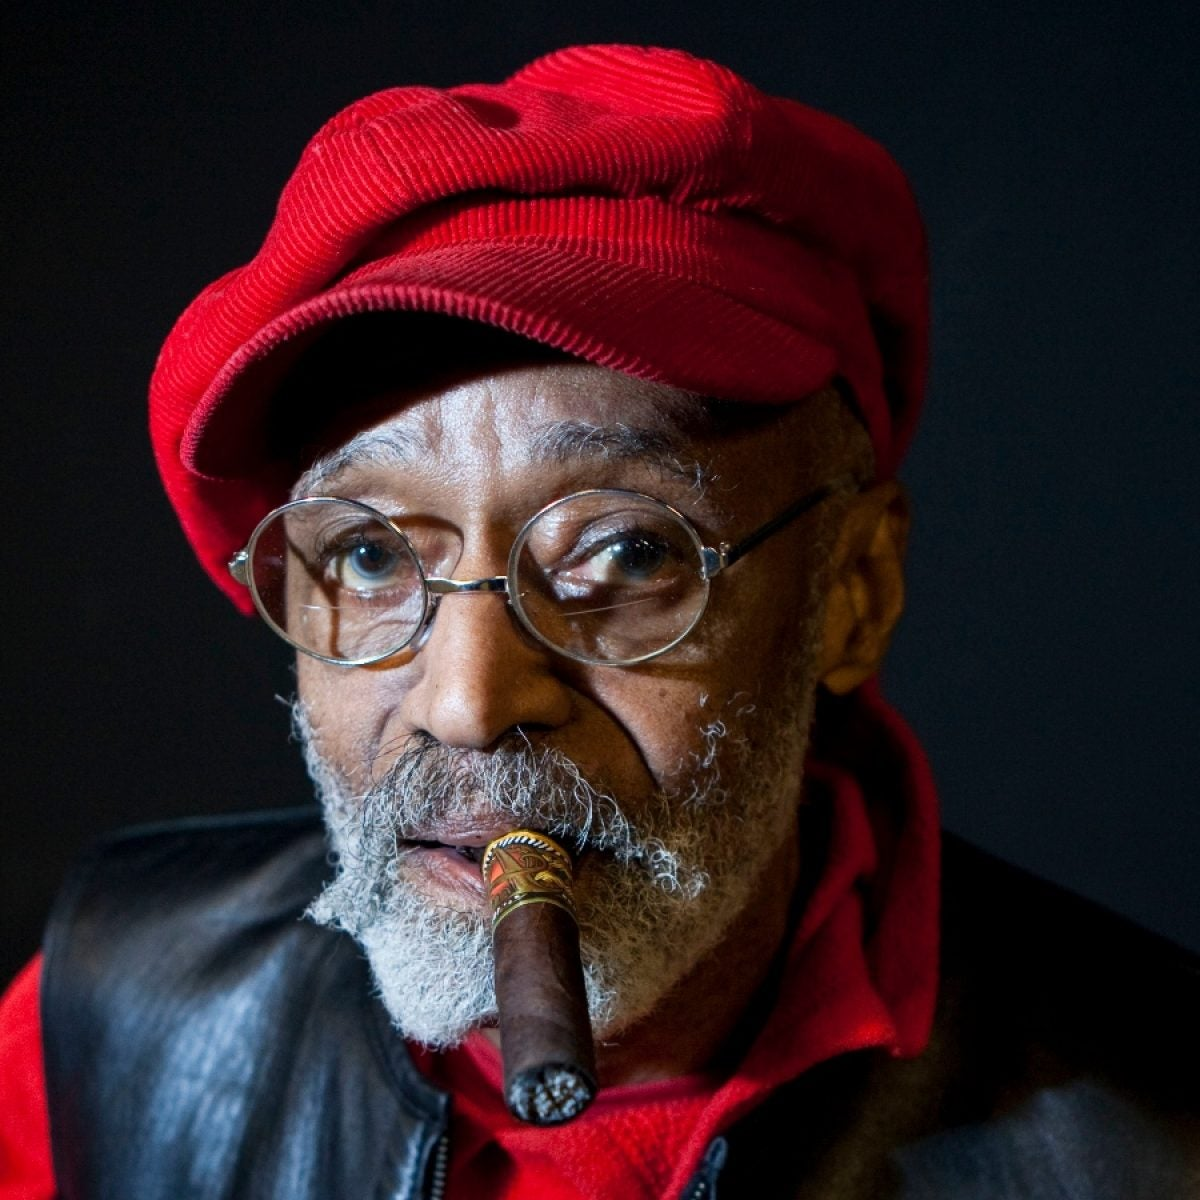 The Life And Legacy Of Melvin Van Peeples In Photos